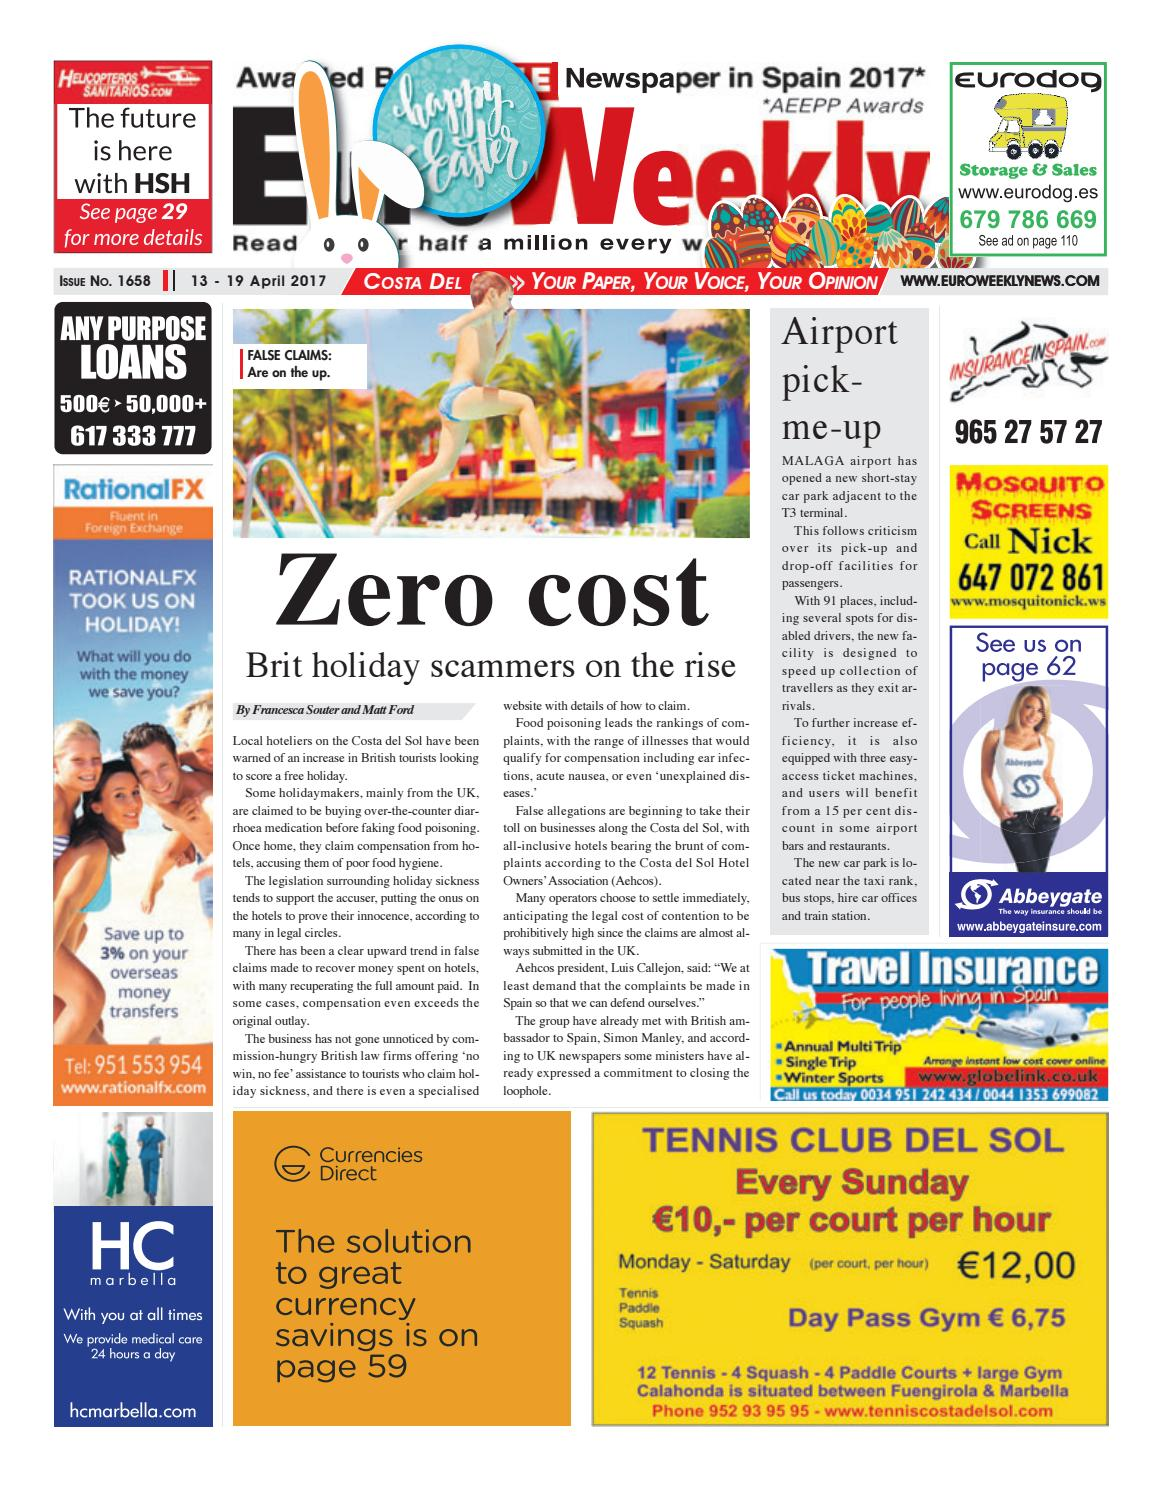 Euro weekly news costa del sol 13 19 april 2017 issue 1658 by euro weekly news costa del sol 13 19 april 2017 issue 1658 by euro weekly news media sa issuu fandeluxe Image collections